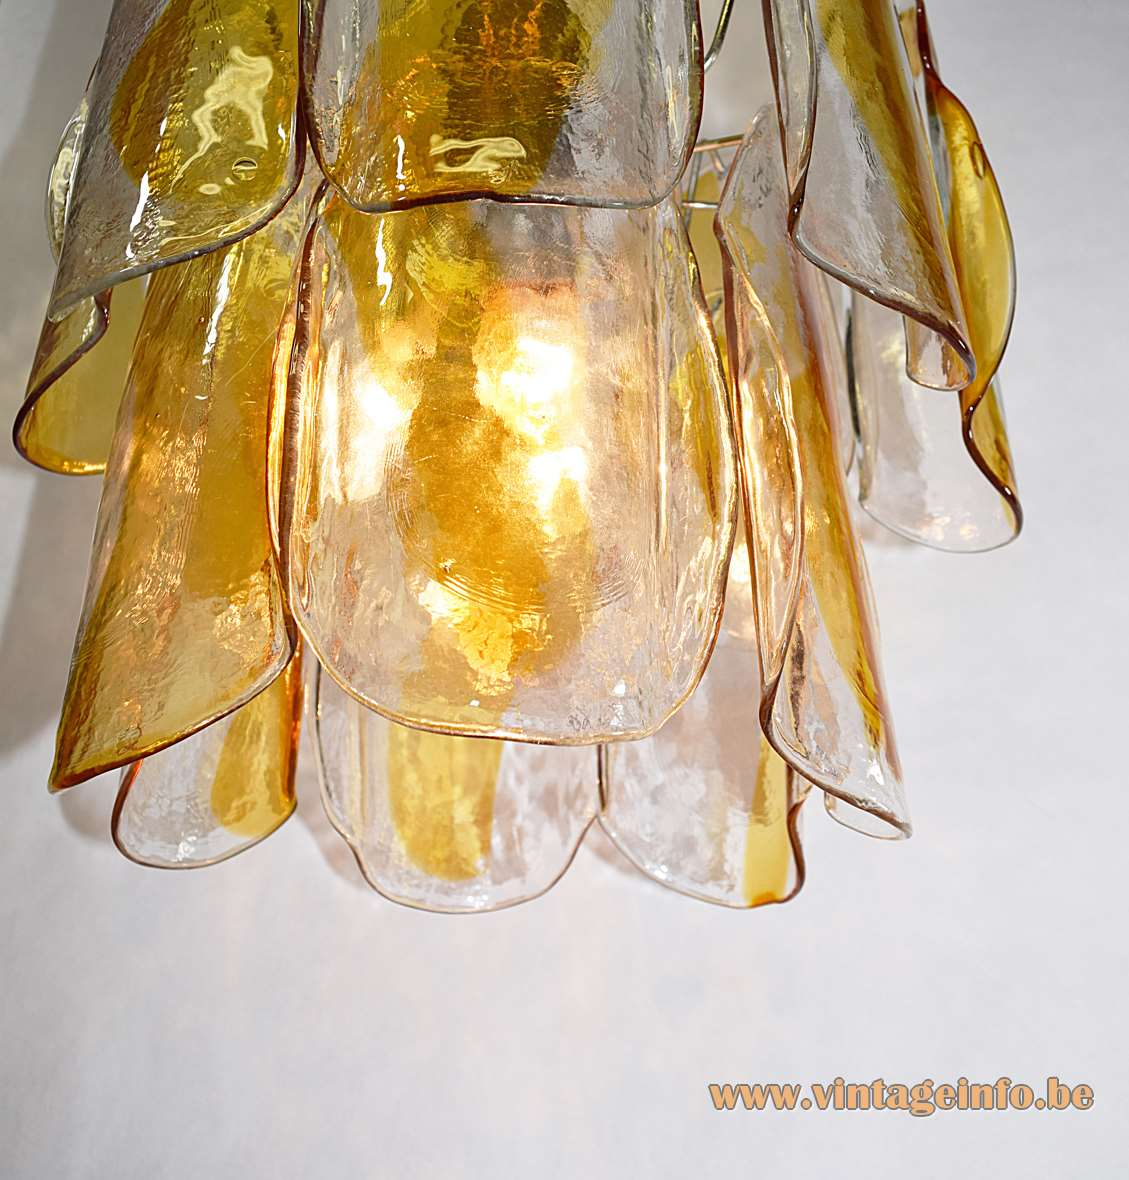 AV Mazzega Amber Crystal Glass Chandelier, 60s design Carlo Nason, 14 curved glass plates, Murano